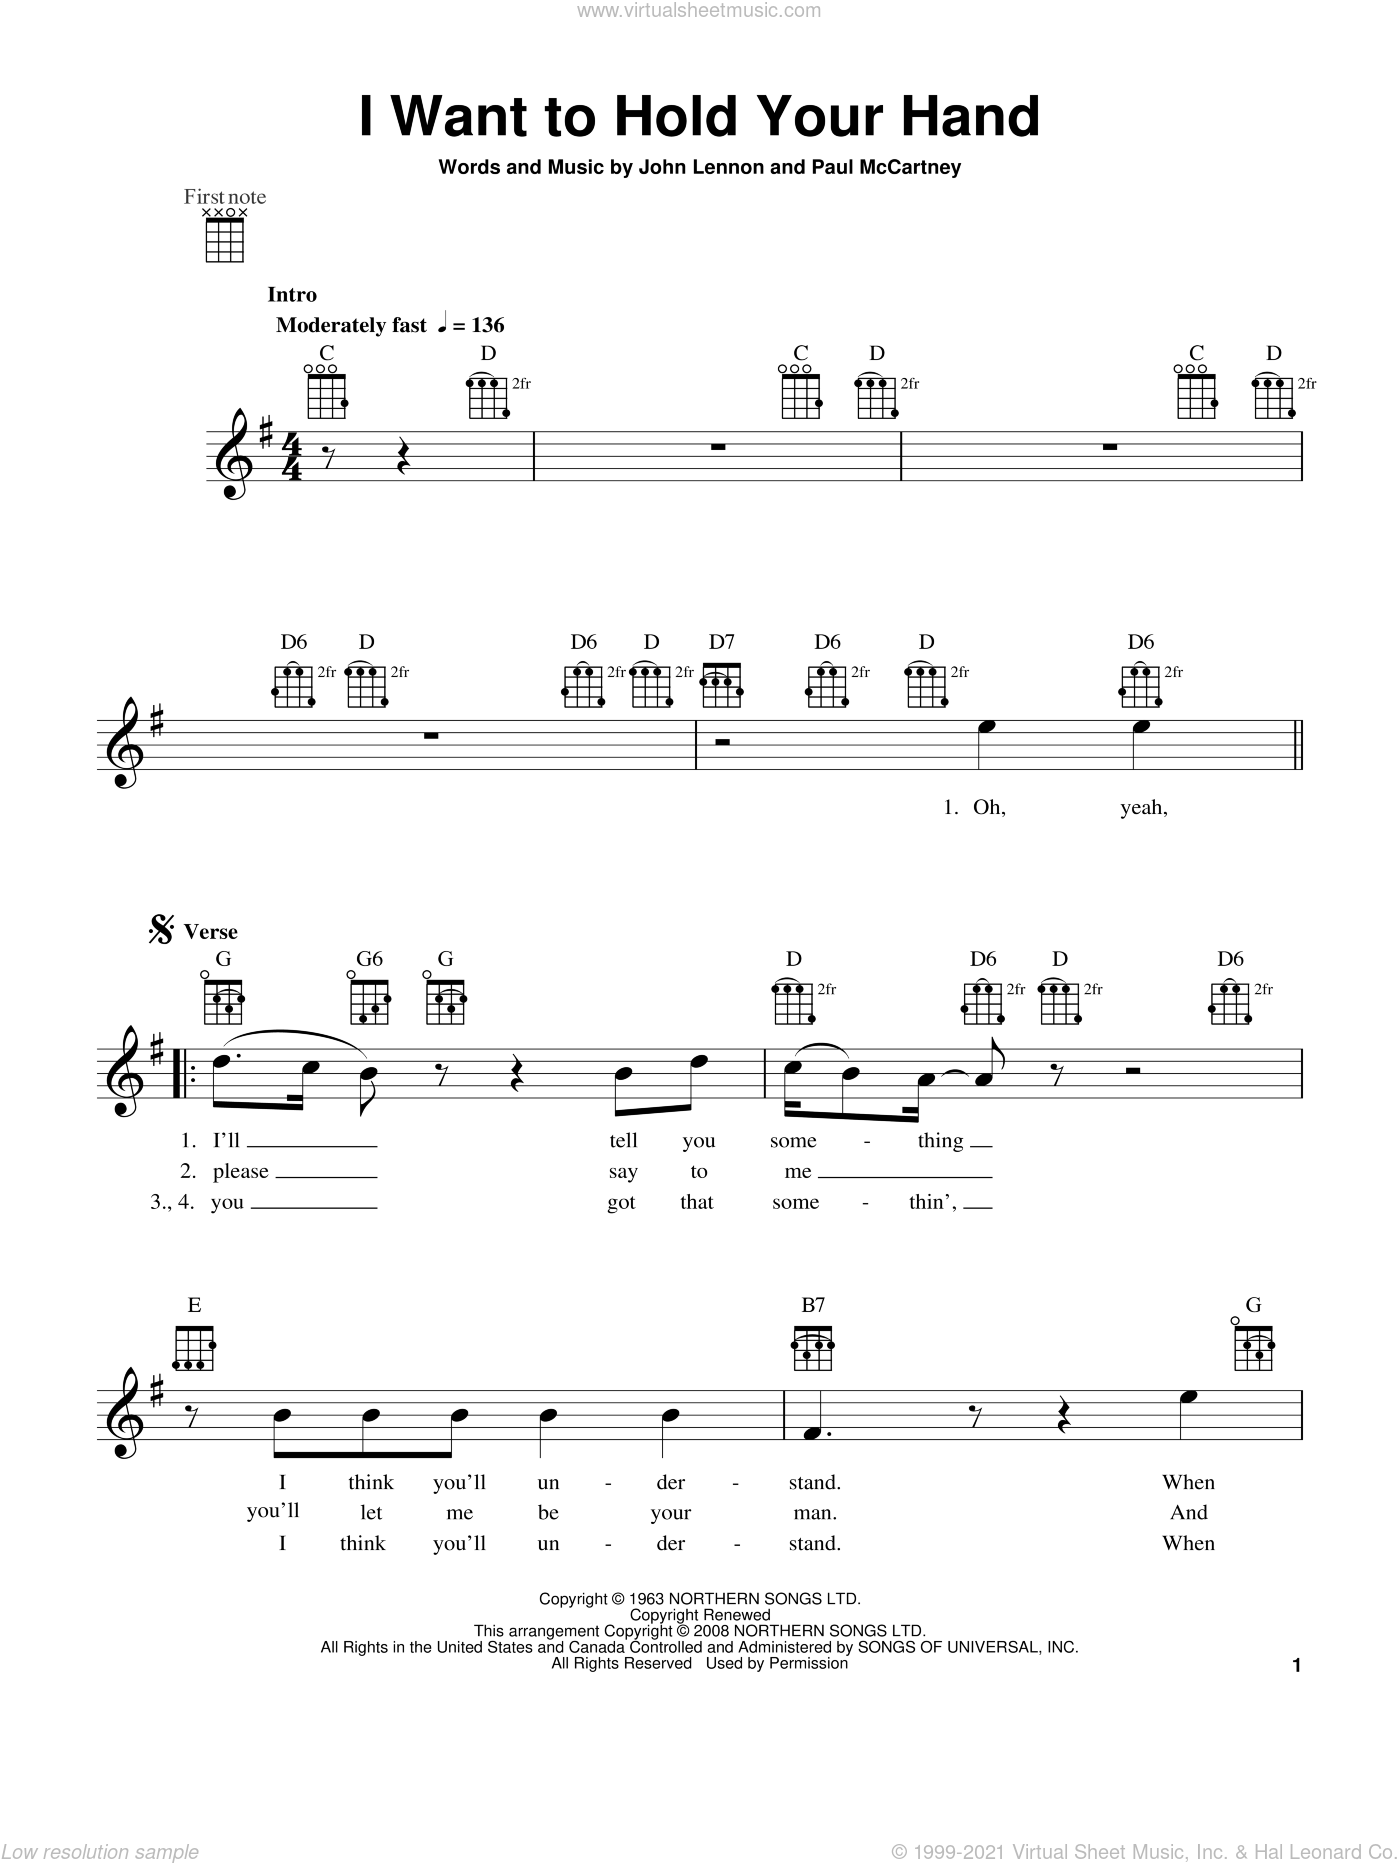 I Want To Hold Your Hand sheet music for ukulele by The Beatles, John Lennon and Paul McCartney, intermediate skill level